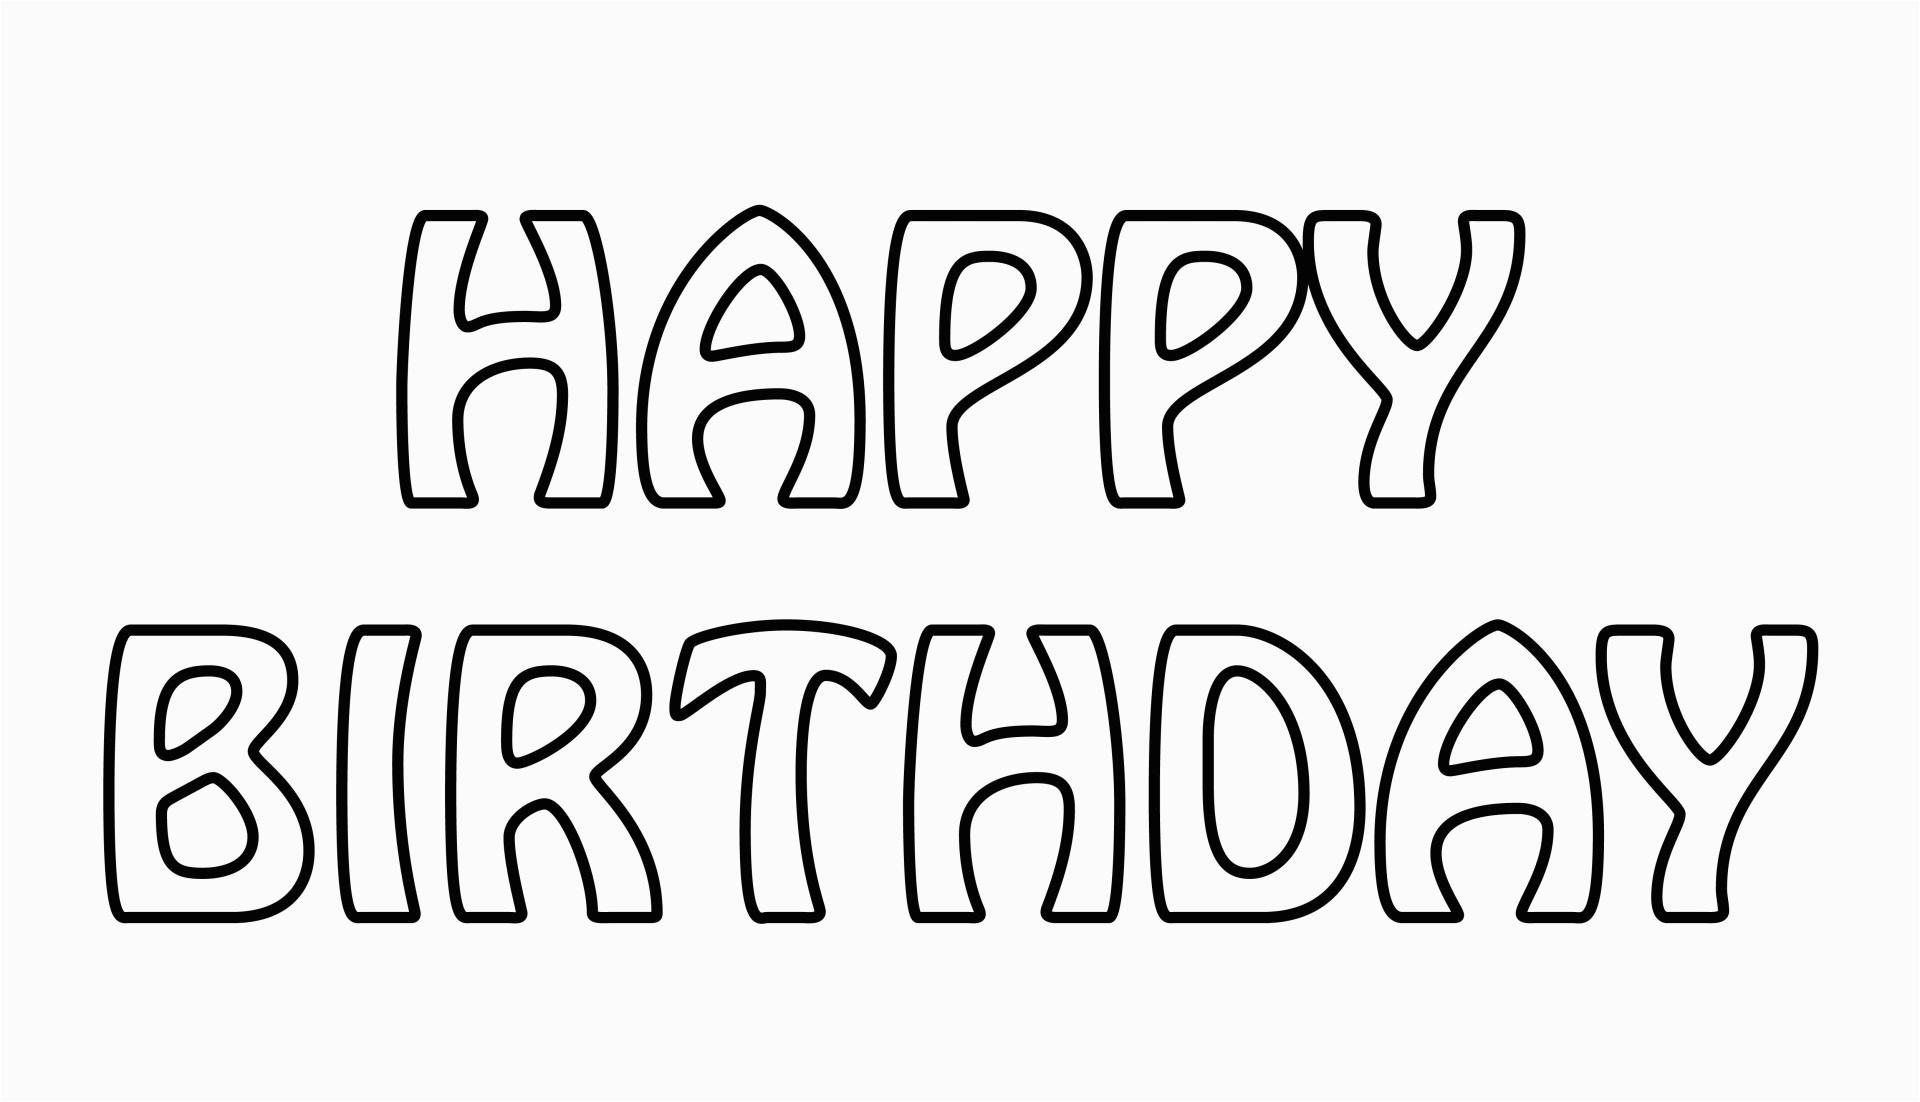 Happy Birthday Banner Clipart Black and White Happy Birthday Text Outline Free Stock Photo Public